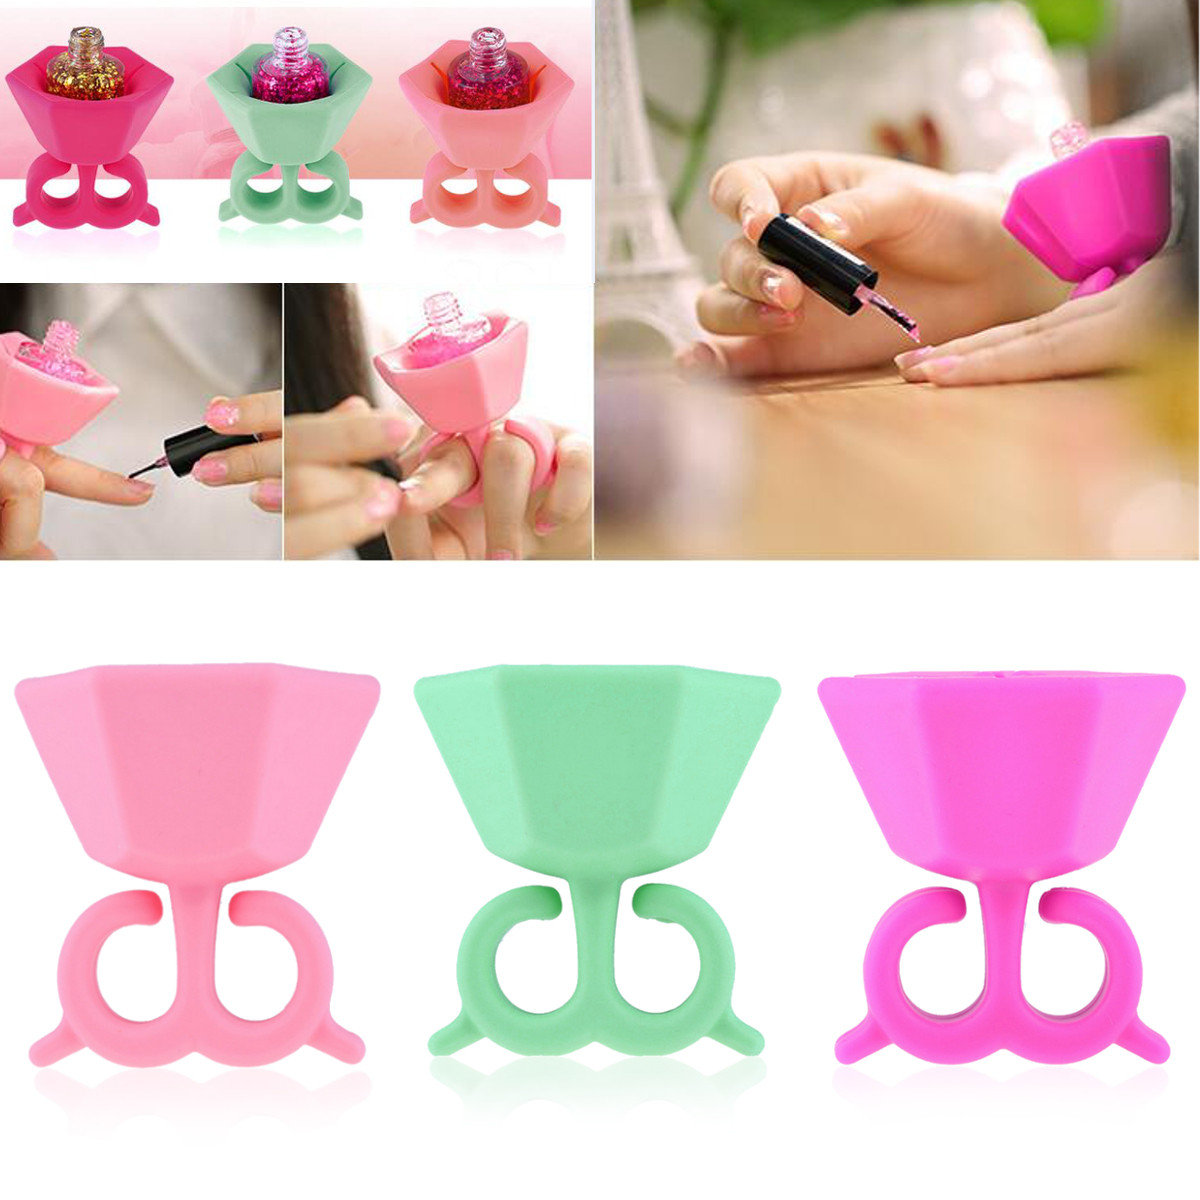 3 Colors Nail Polish Bottle Holder DIY Manicure Tools Tips Varnish Stand